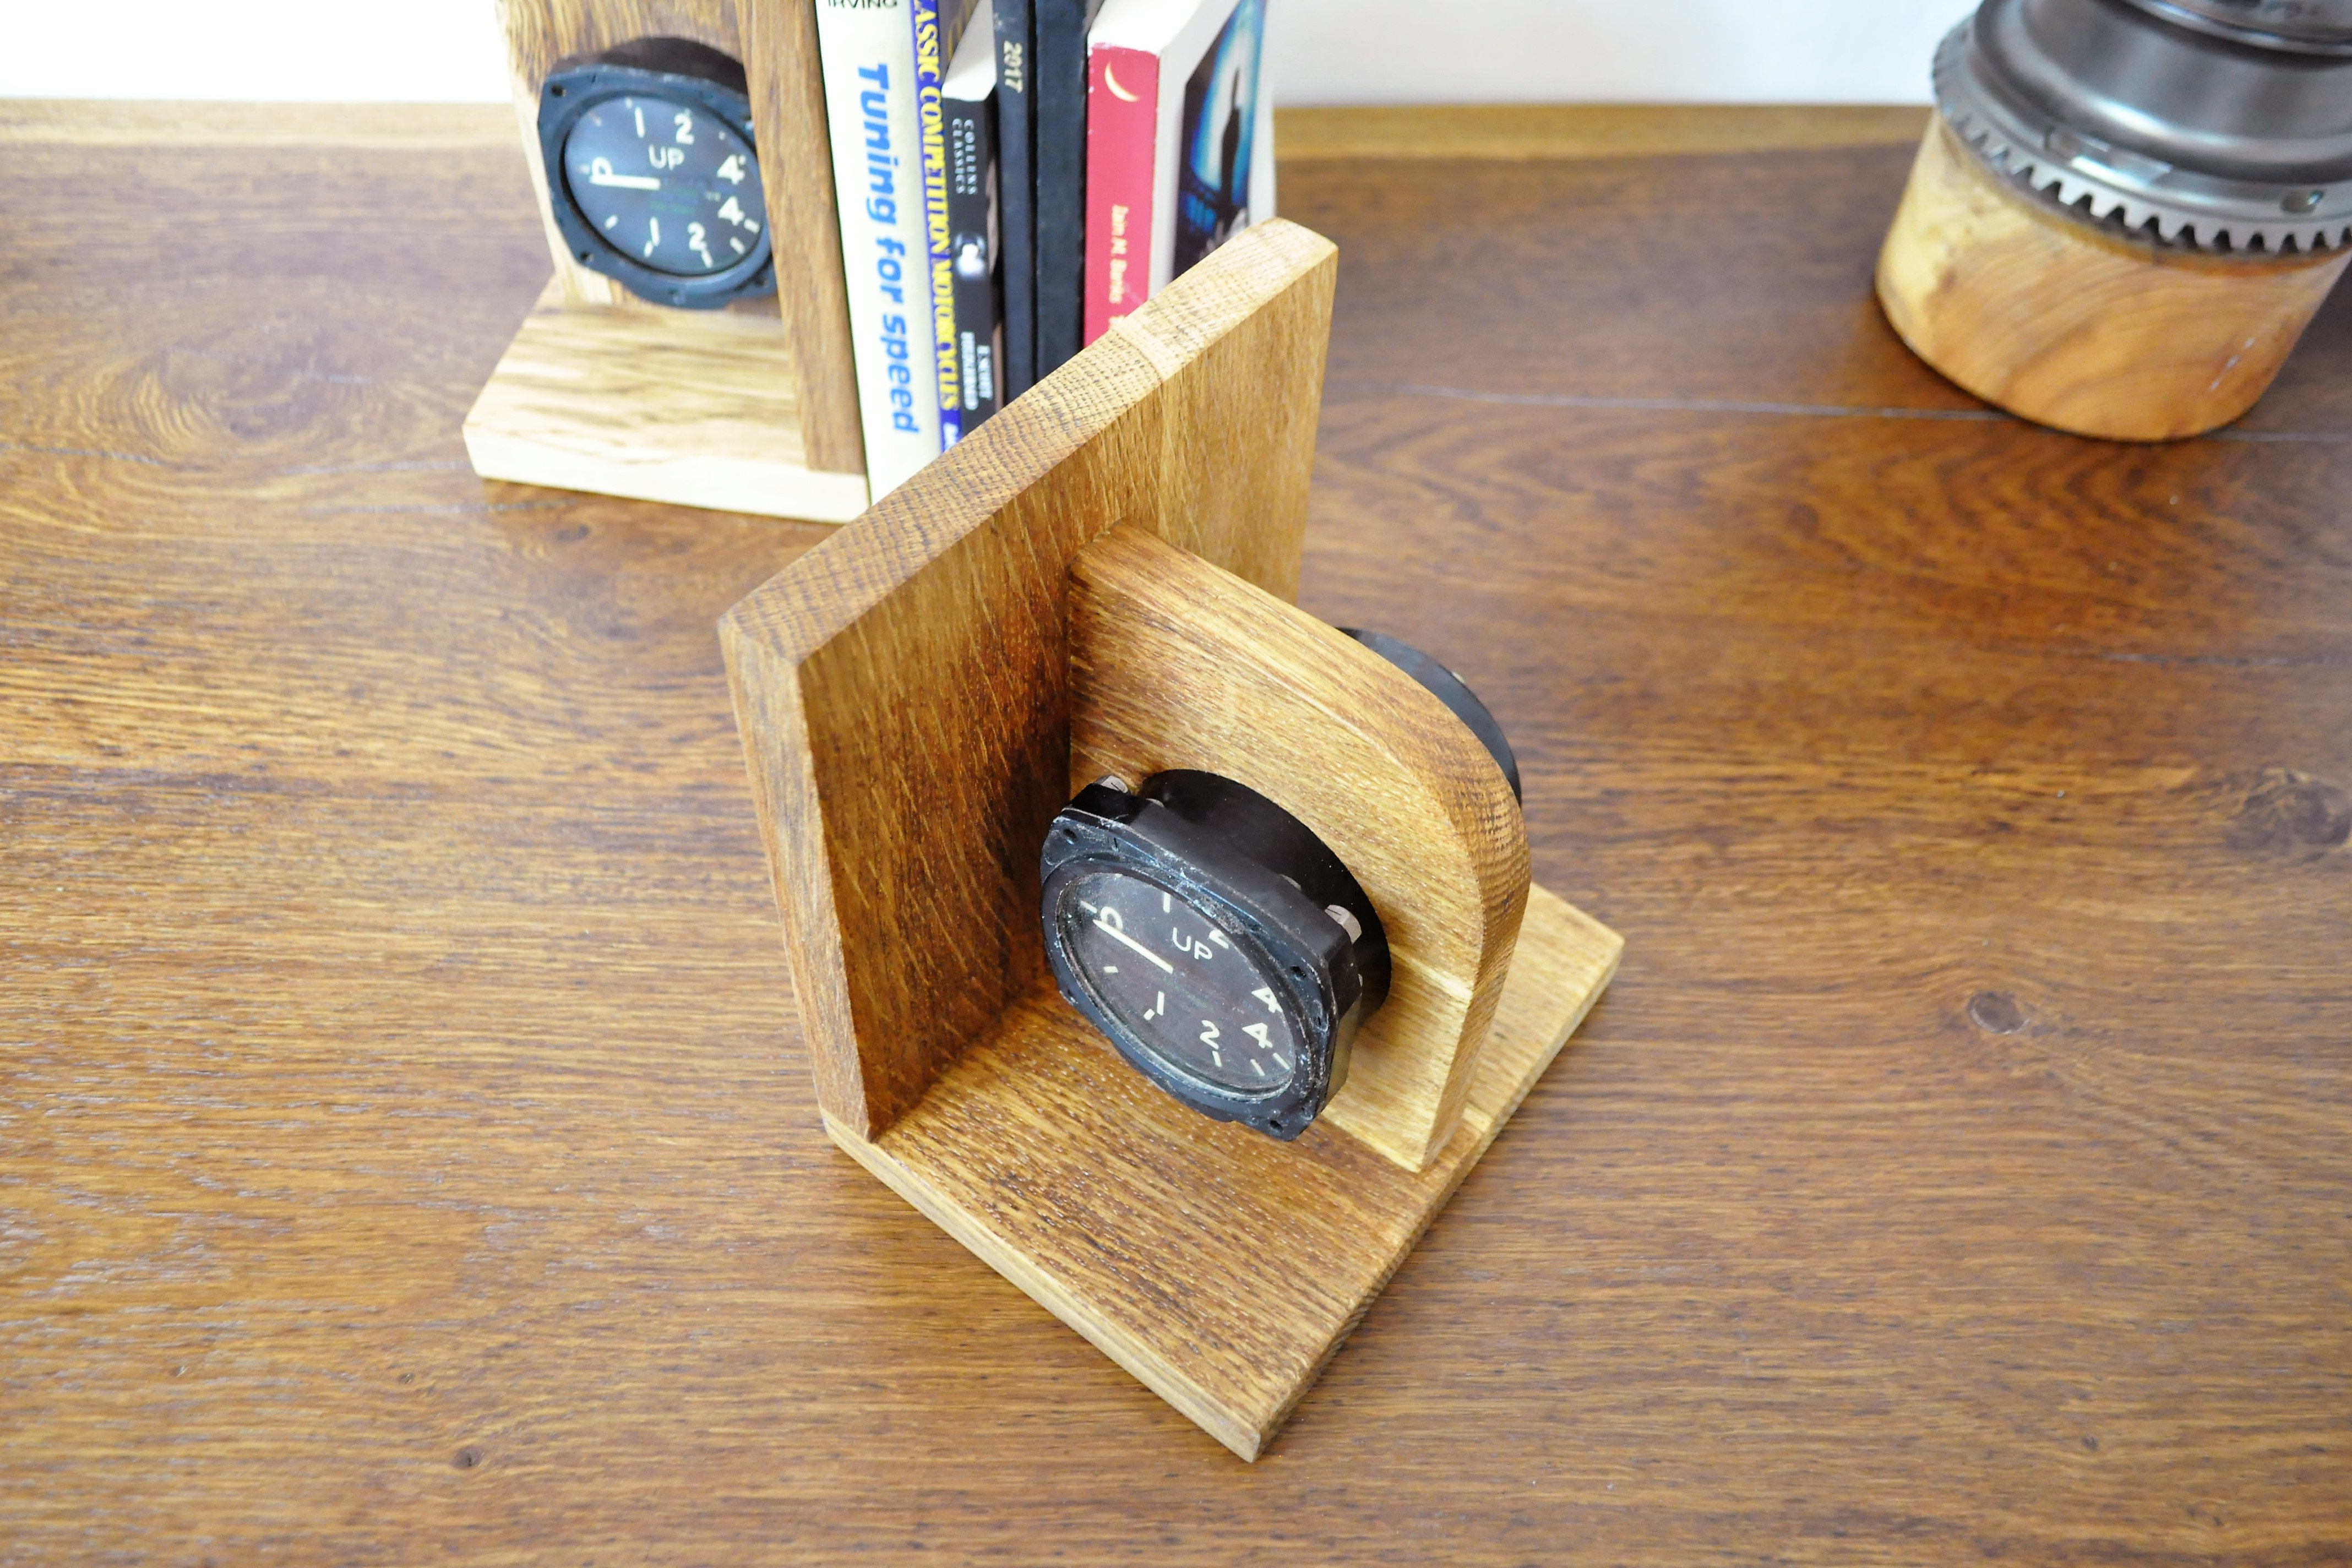 The Aviation Gauge Book Ends are made from original decommissioned 1950's -  1960's aeroplane gauges from a MOD plane. The gauges measure the speed of  the ...